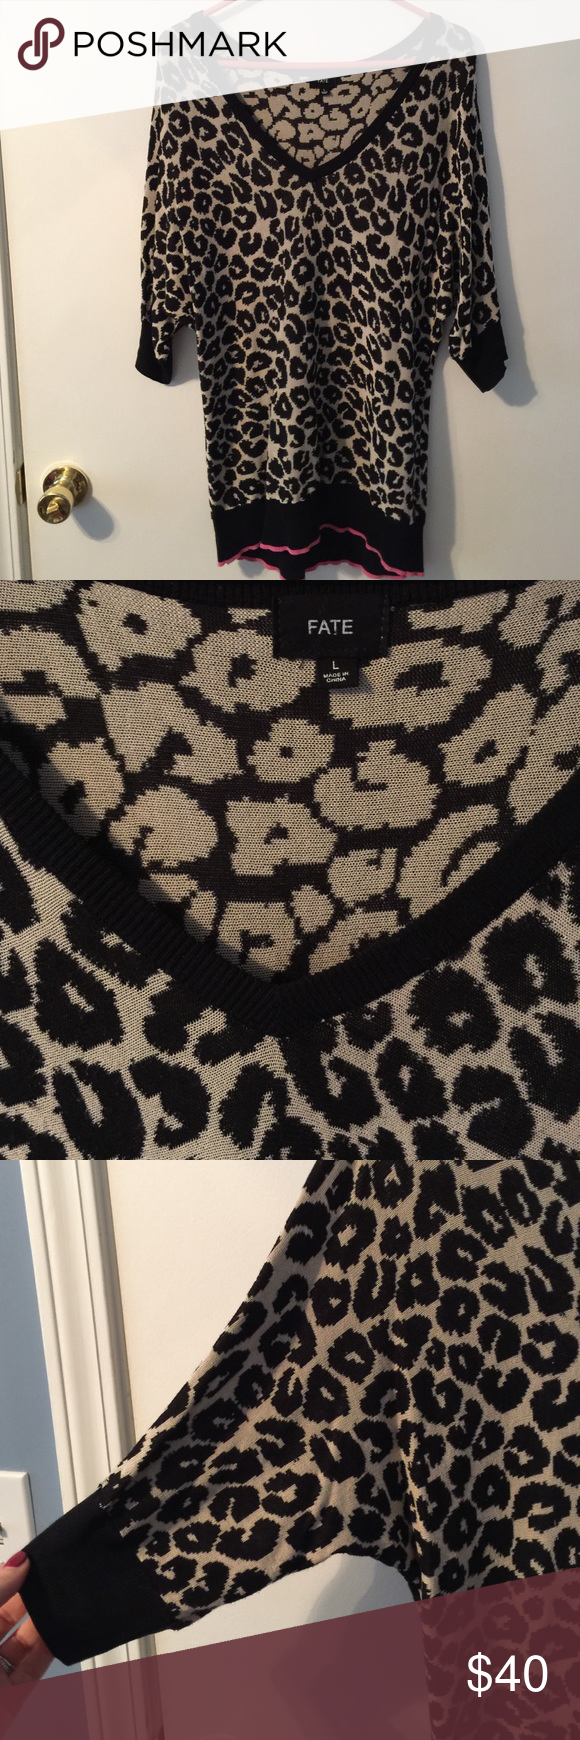 Stitch Fix Fate Leopard print Dolman tunic/sweater Worn maybe 3 times. Has adorable bright pink trim around the bottom. Is v-neck with Dolman sleeves. Long enough to cover the booty! Looks great over leggings and with pink accessories. Fate Sweaters V-Necks